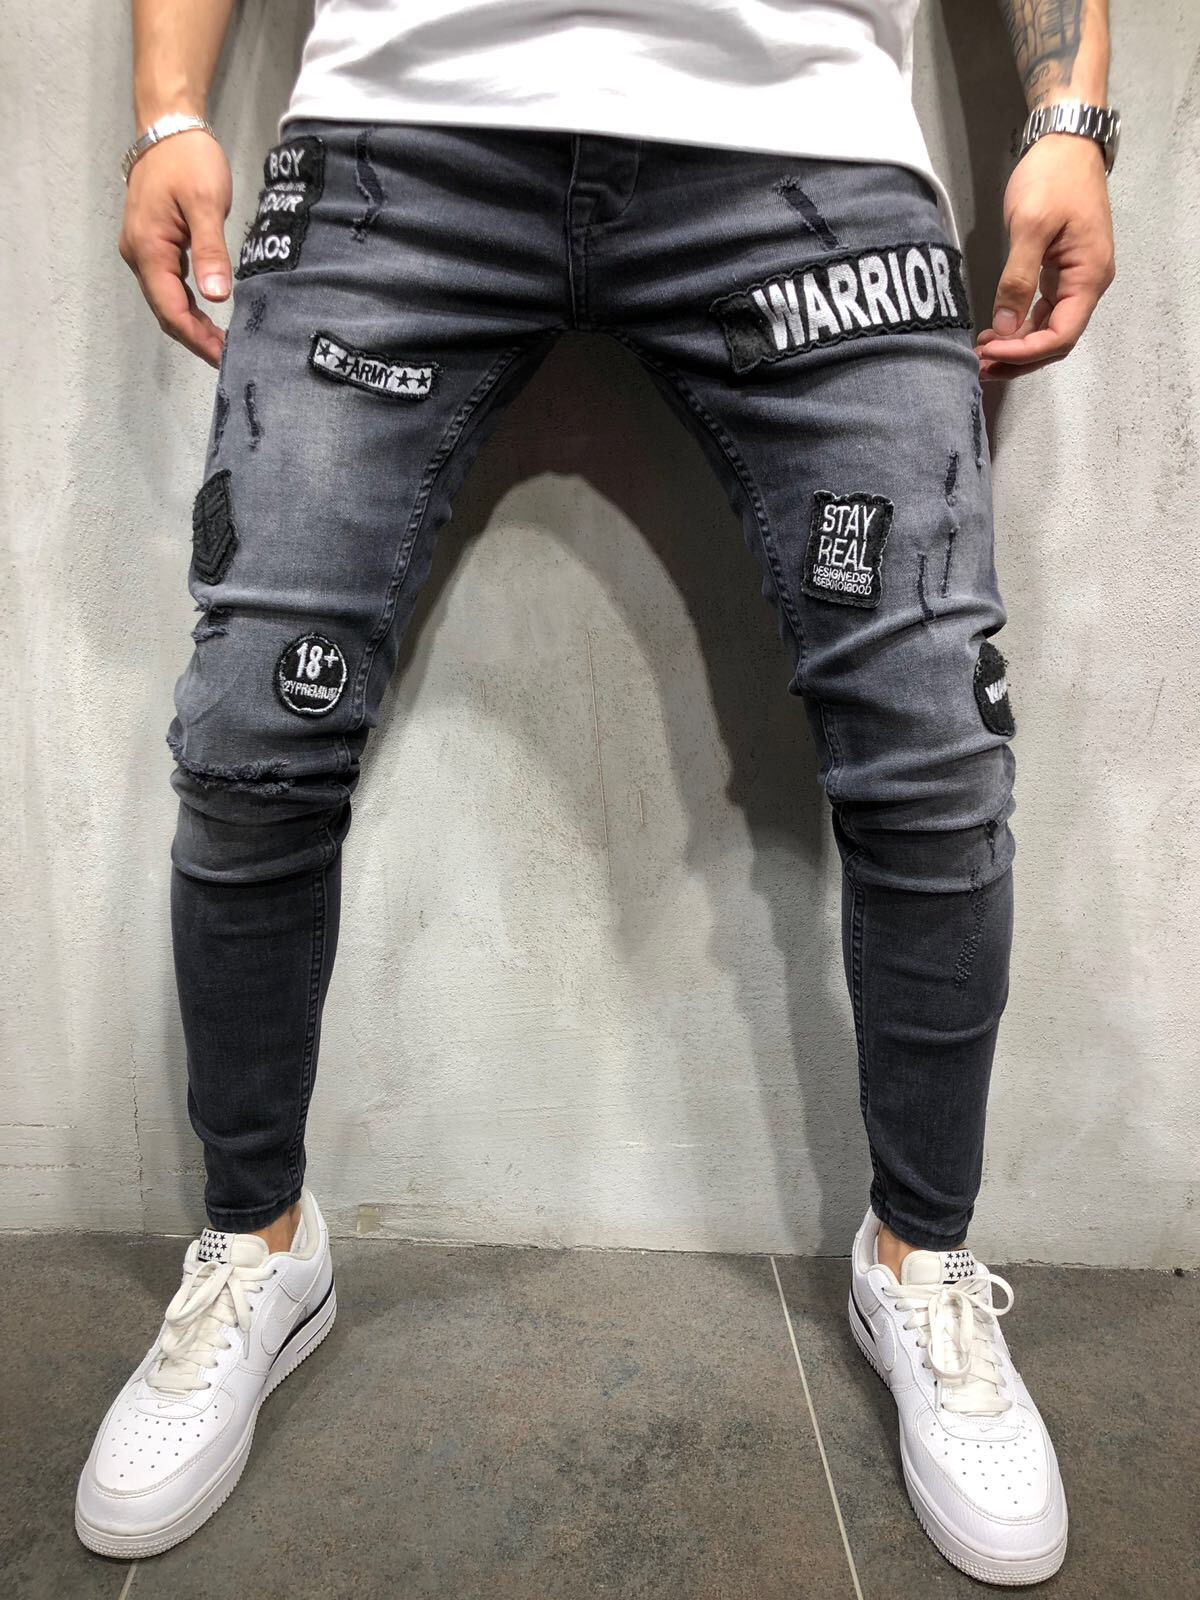 -With Holes Fashion MEN'S Jeans Men's Slim Fit Pants Tattered Jeans Knee Pin Tiao Fashion Locomotive Pants